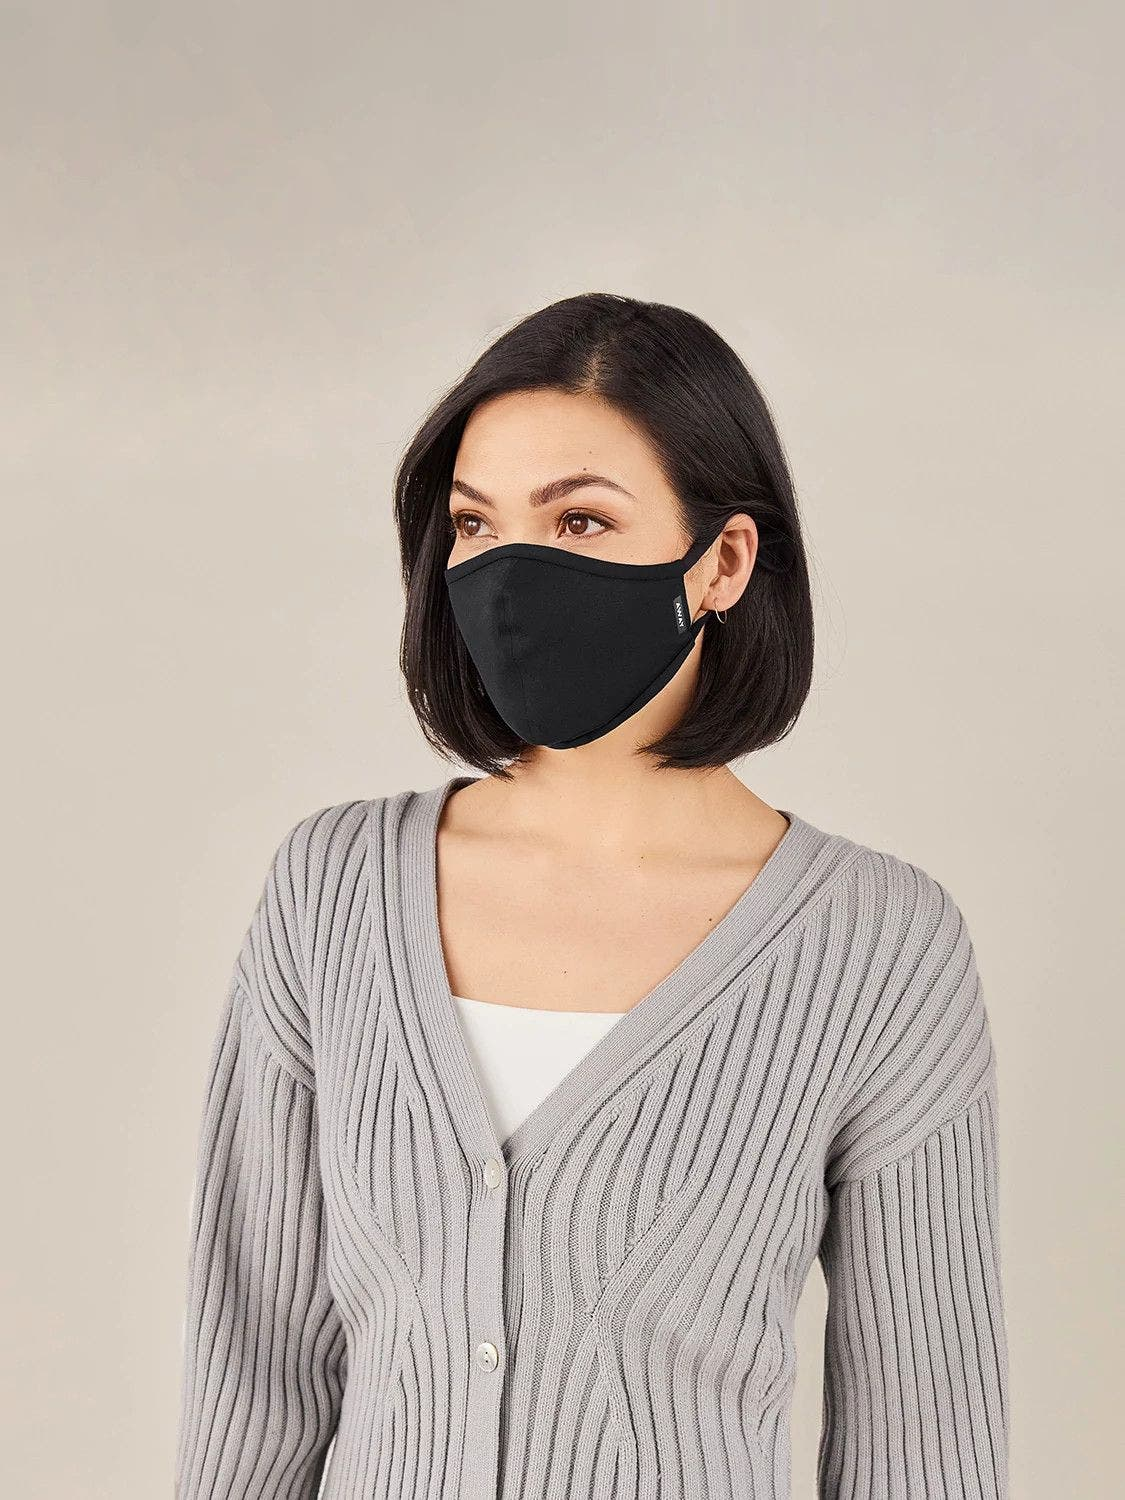 A woman in a grey sweater wearing a black reusable cloth face mask.